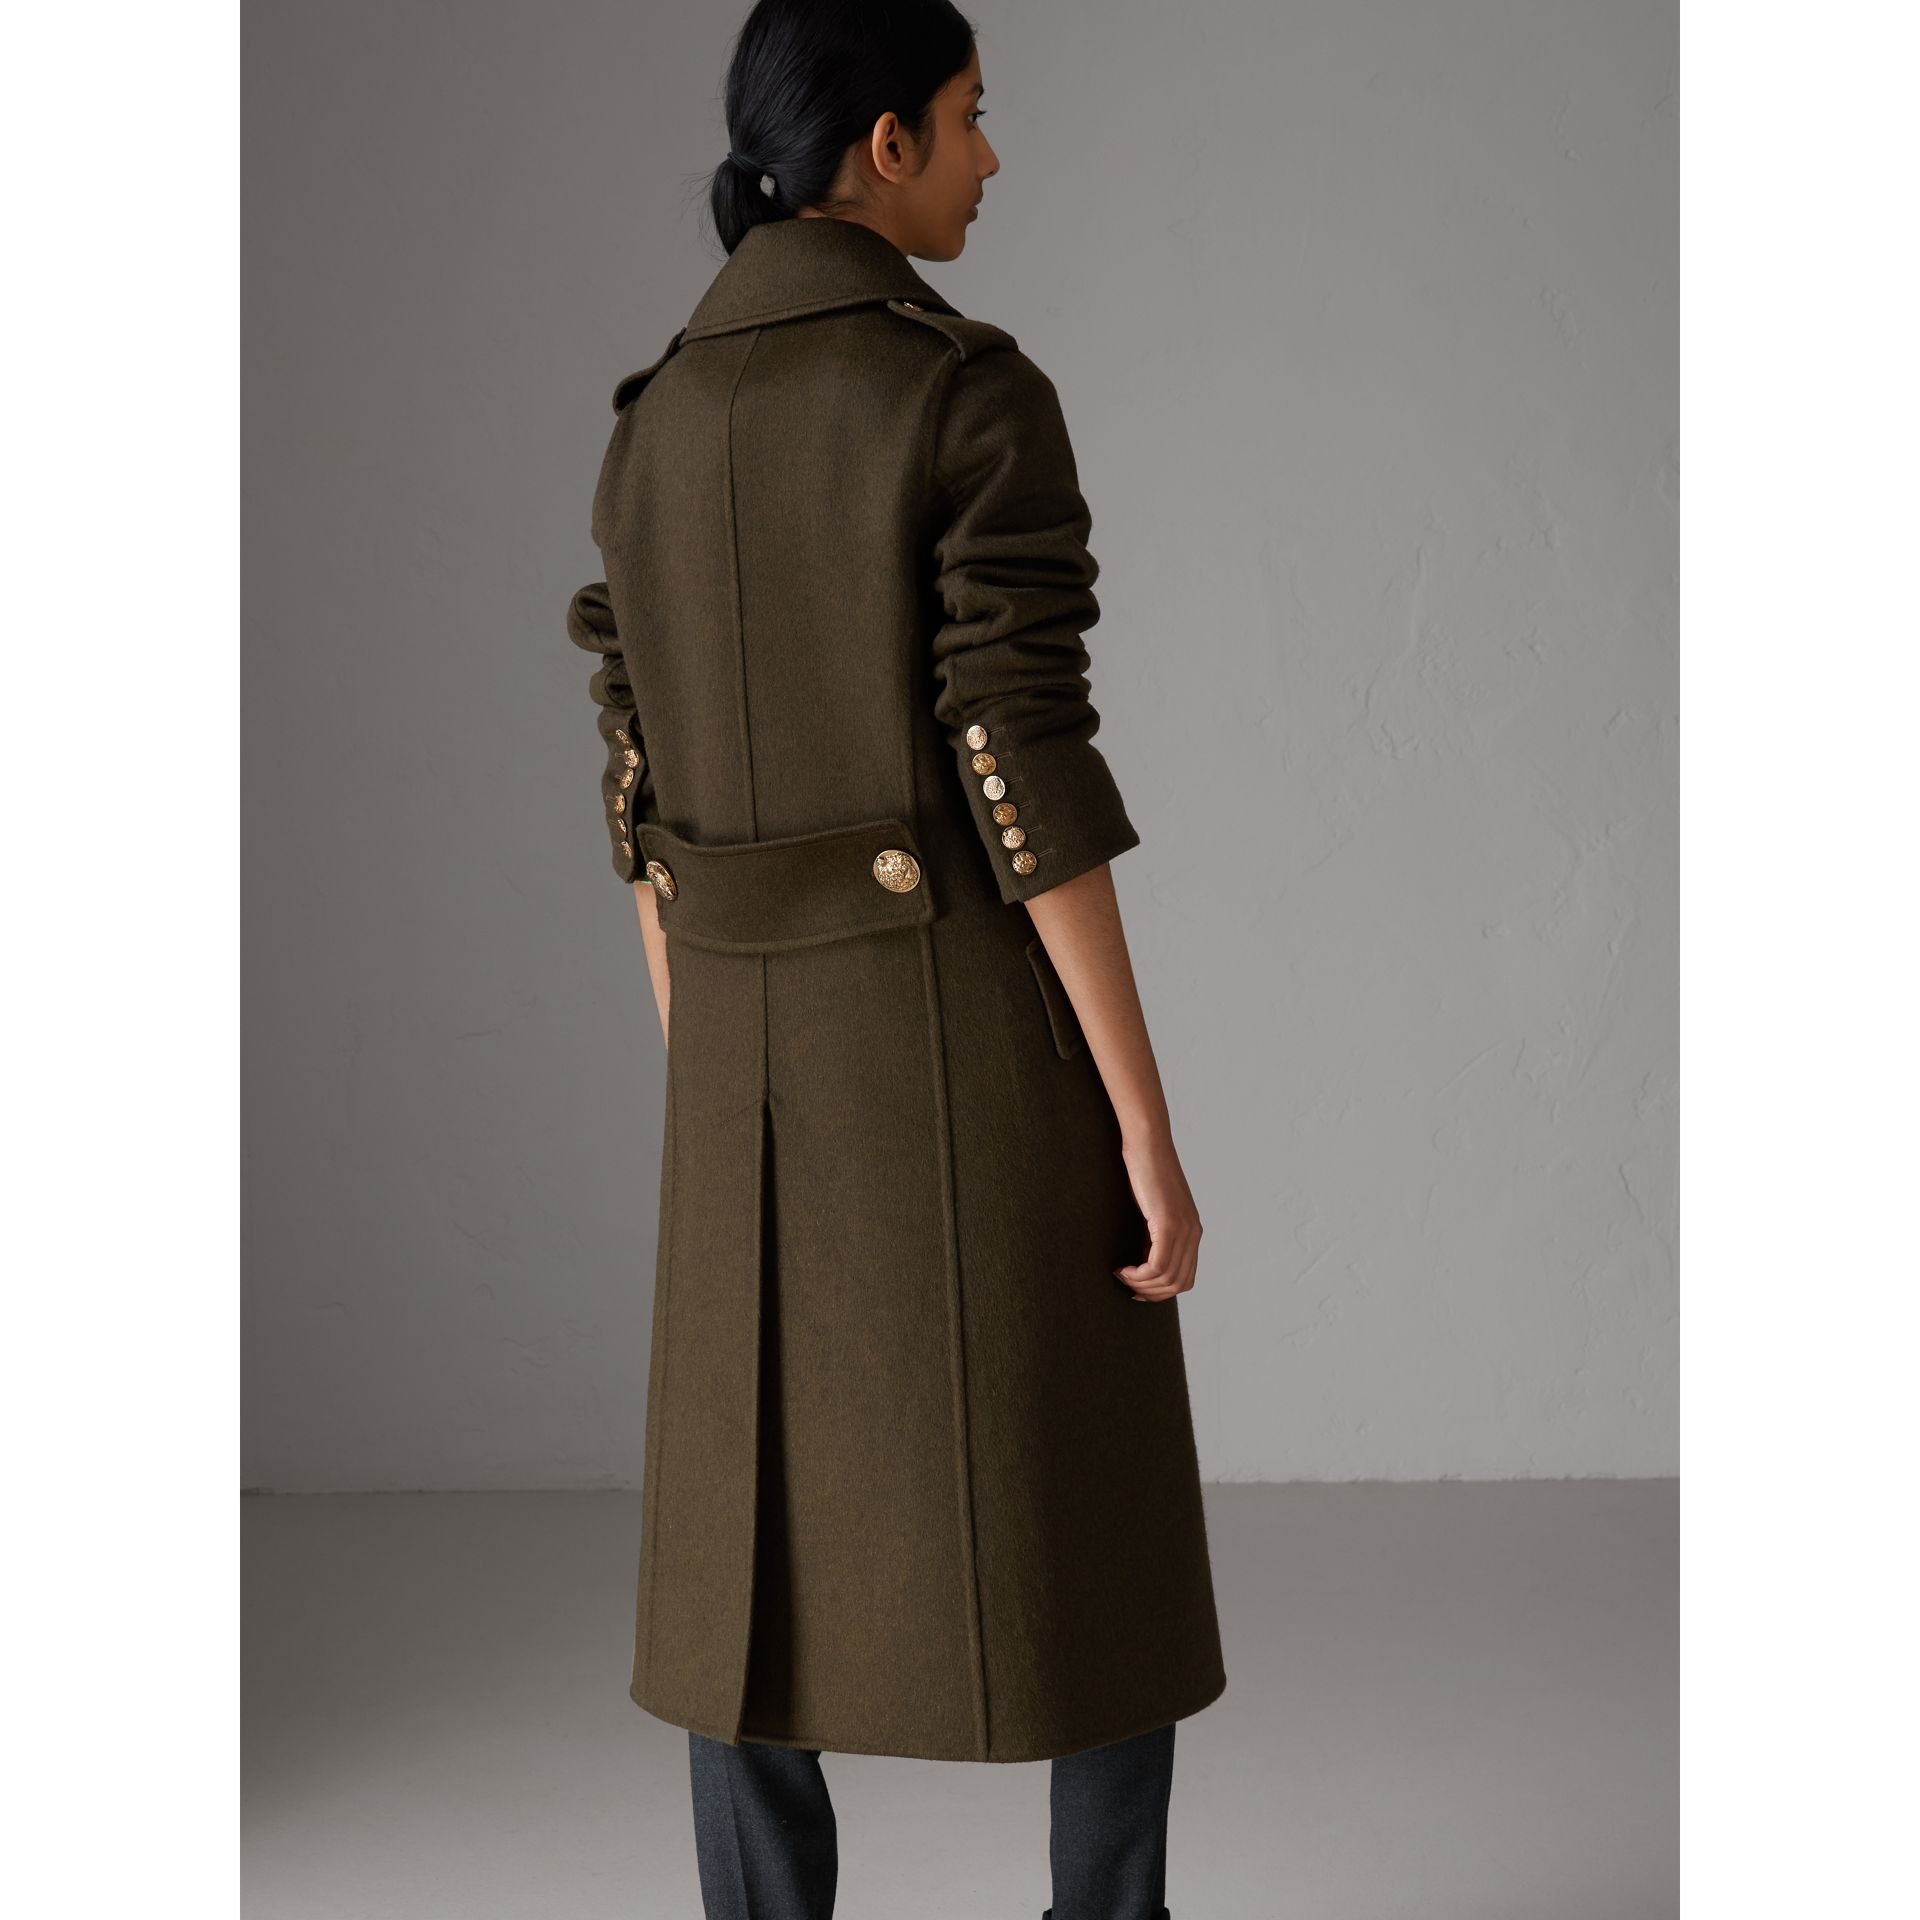 Bird Button Cashmere Wool Military Coat in Dark  Green - Women | Burberry Canada - gallery image 2